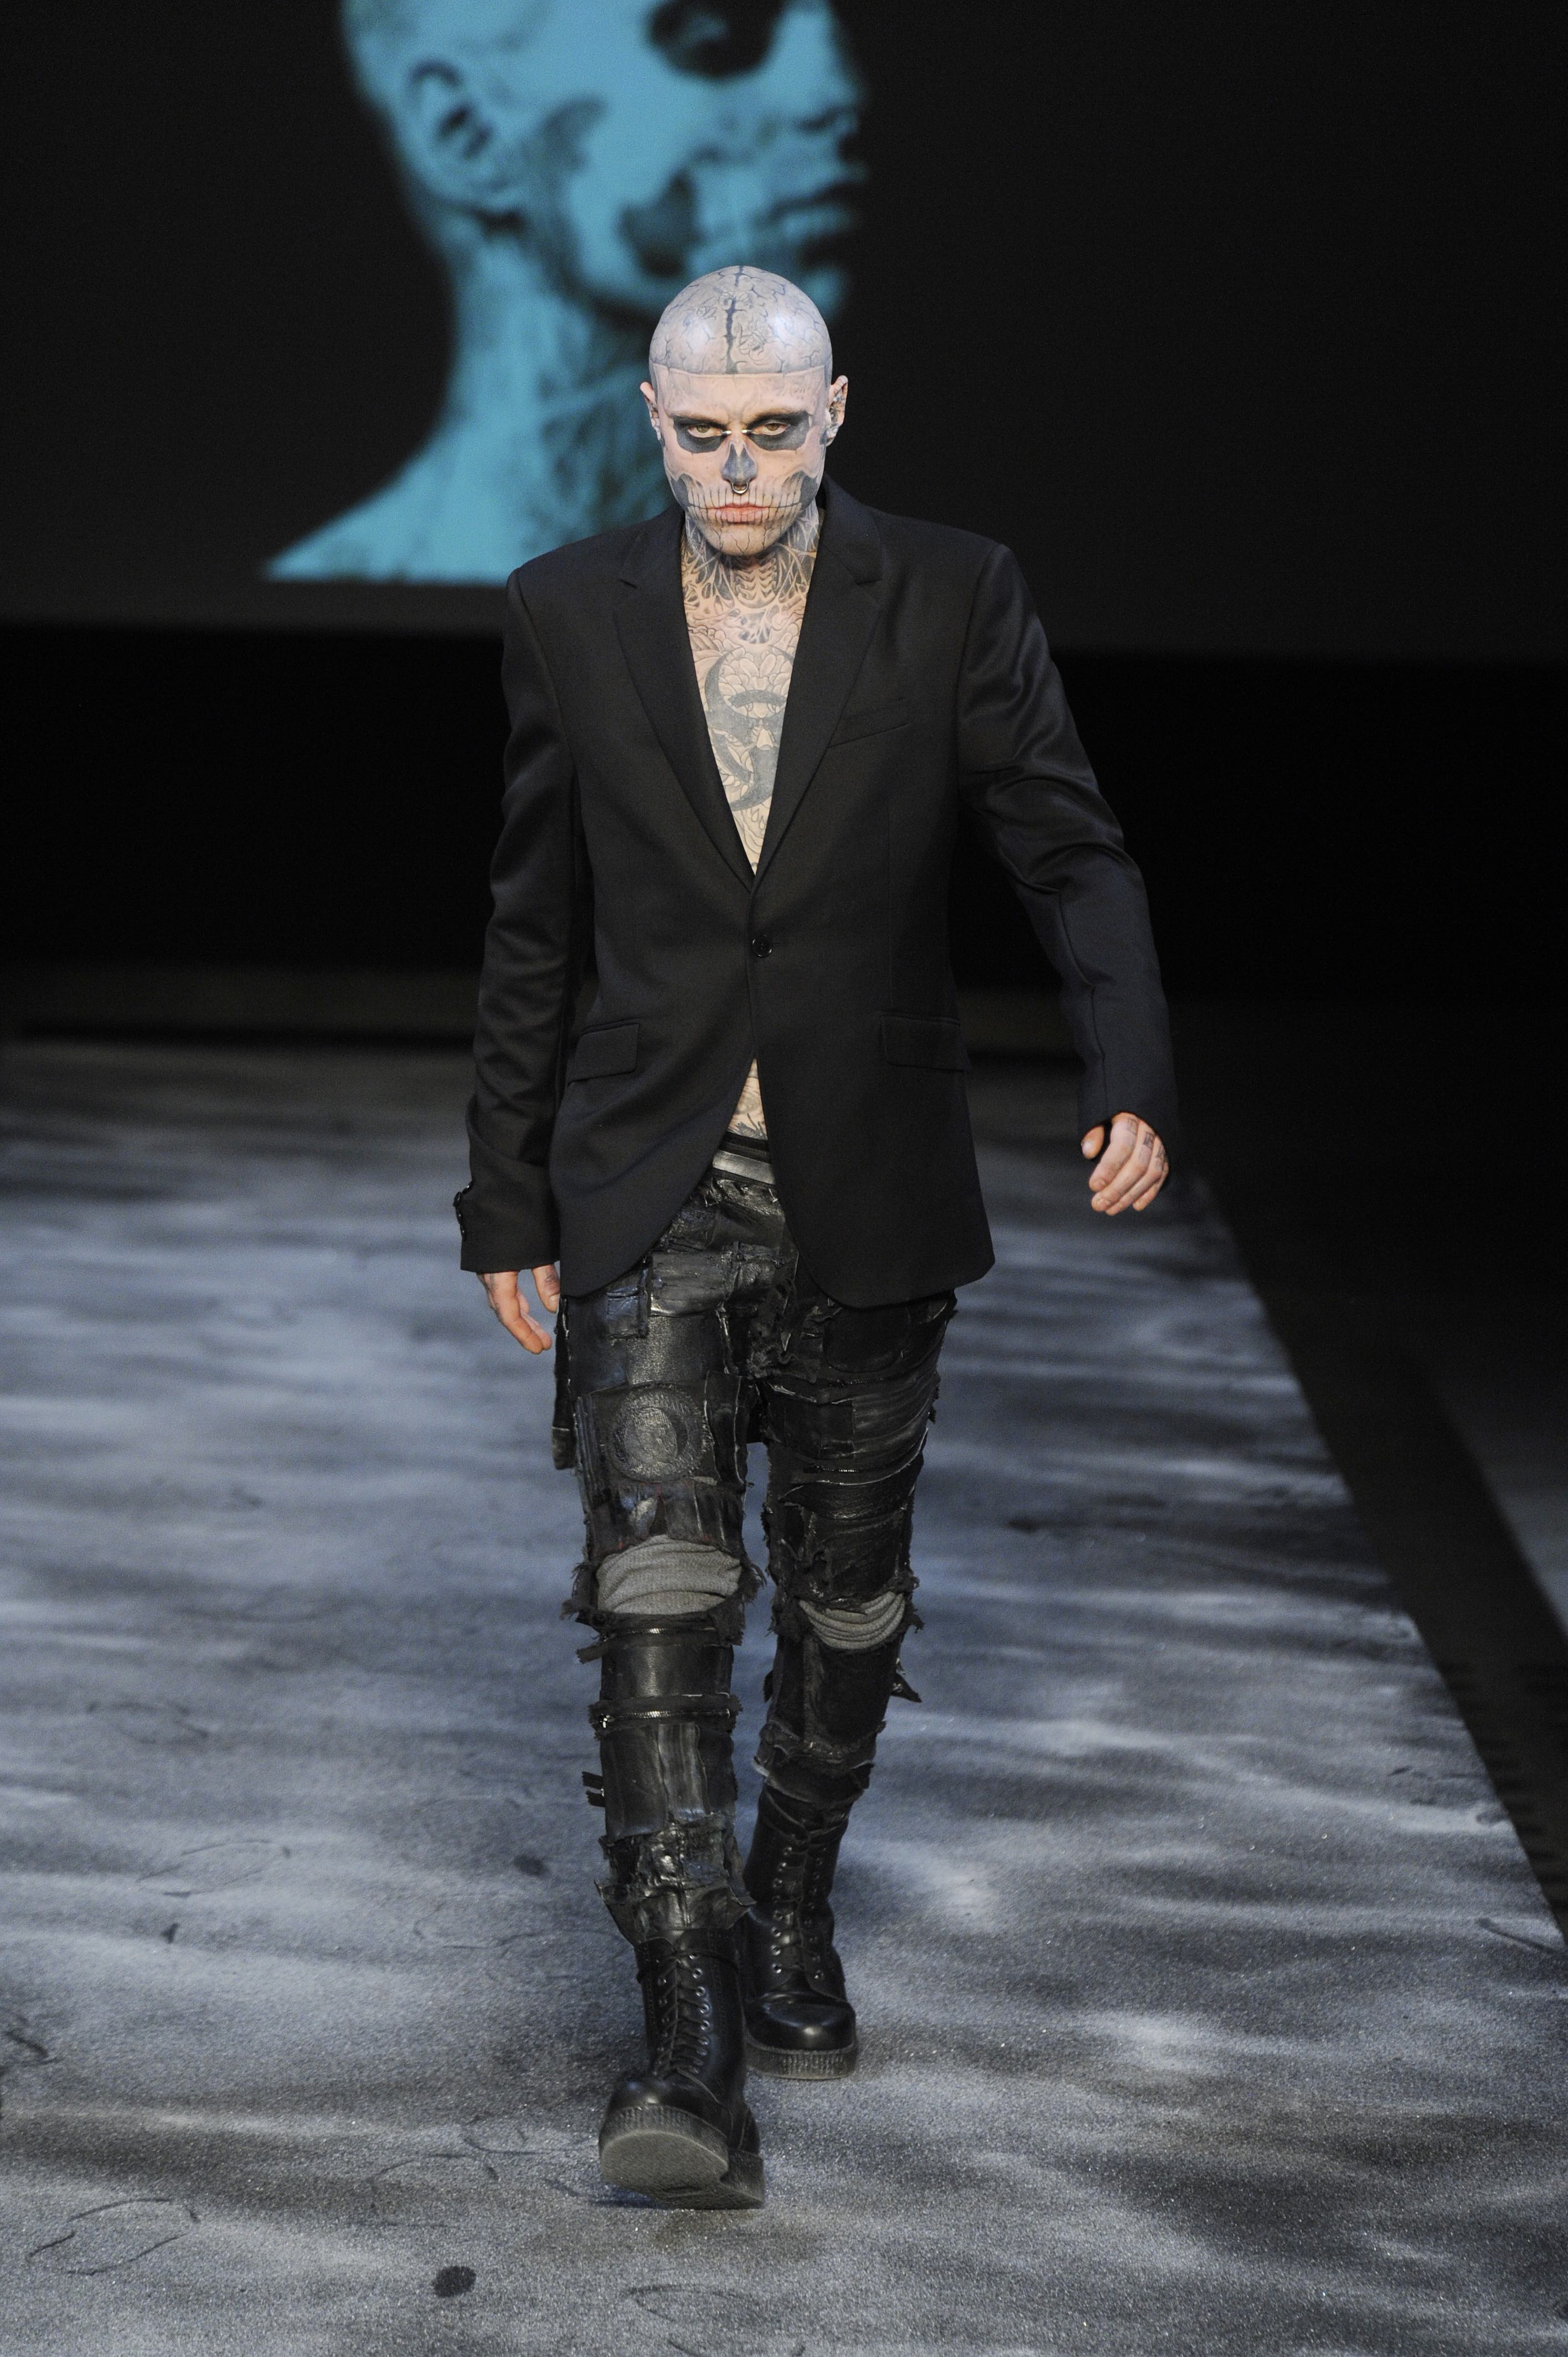 Rick Genest aka Zombie Boy on the runway at Mugler men's fall 2011 show